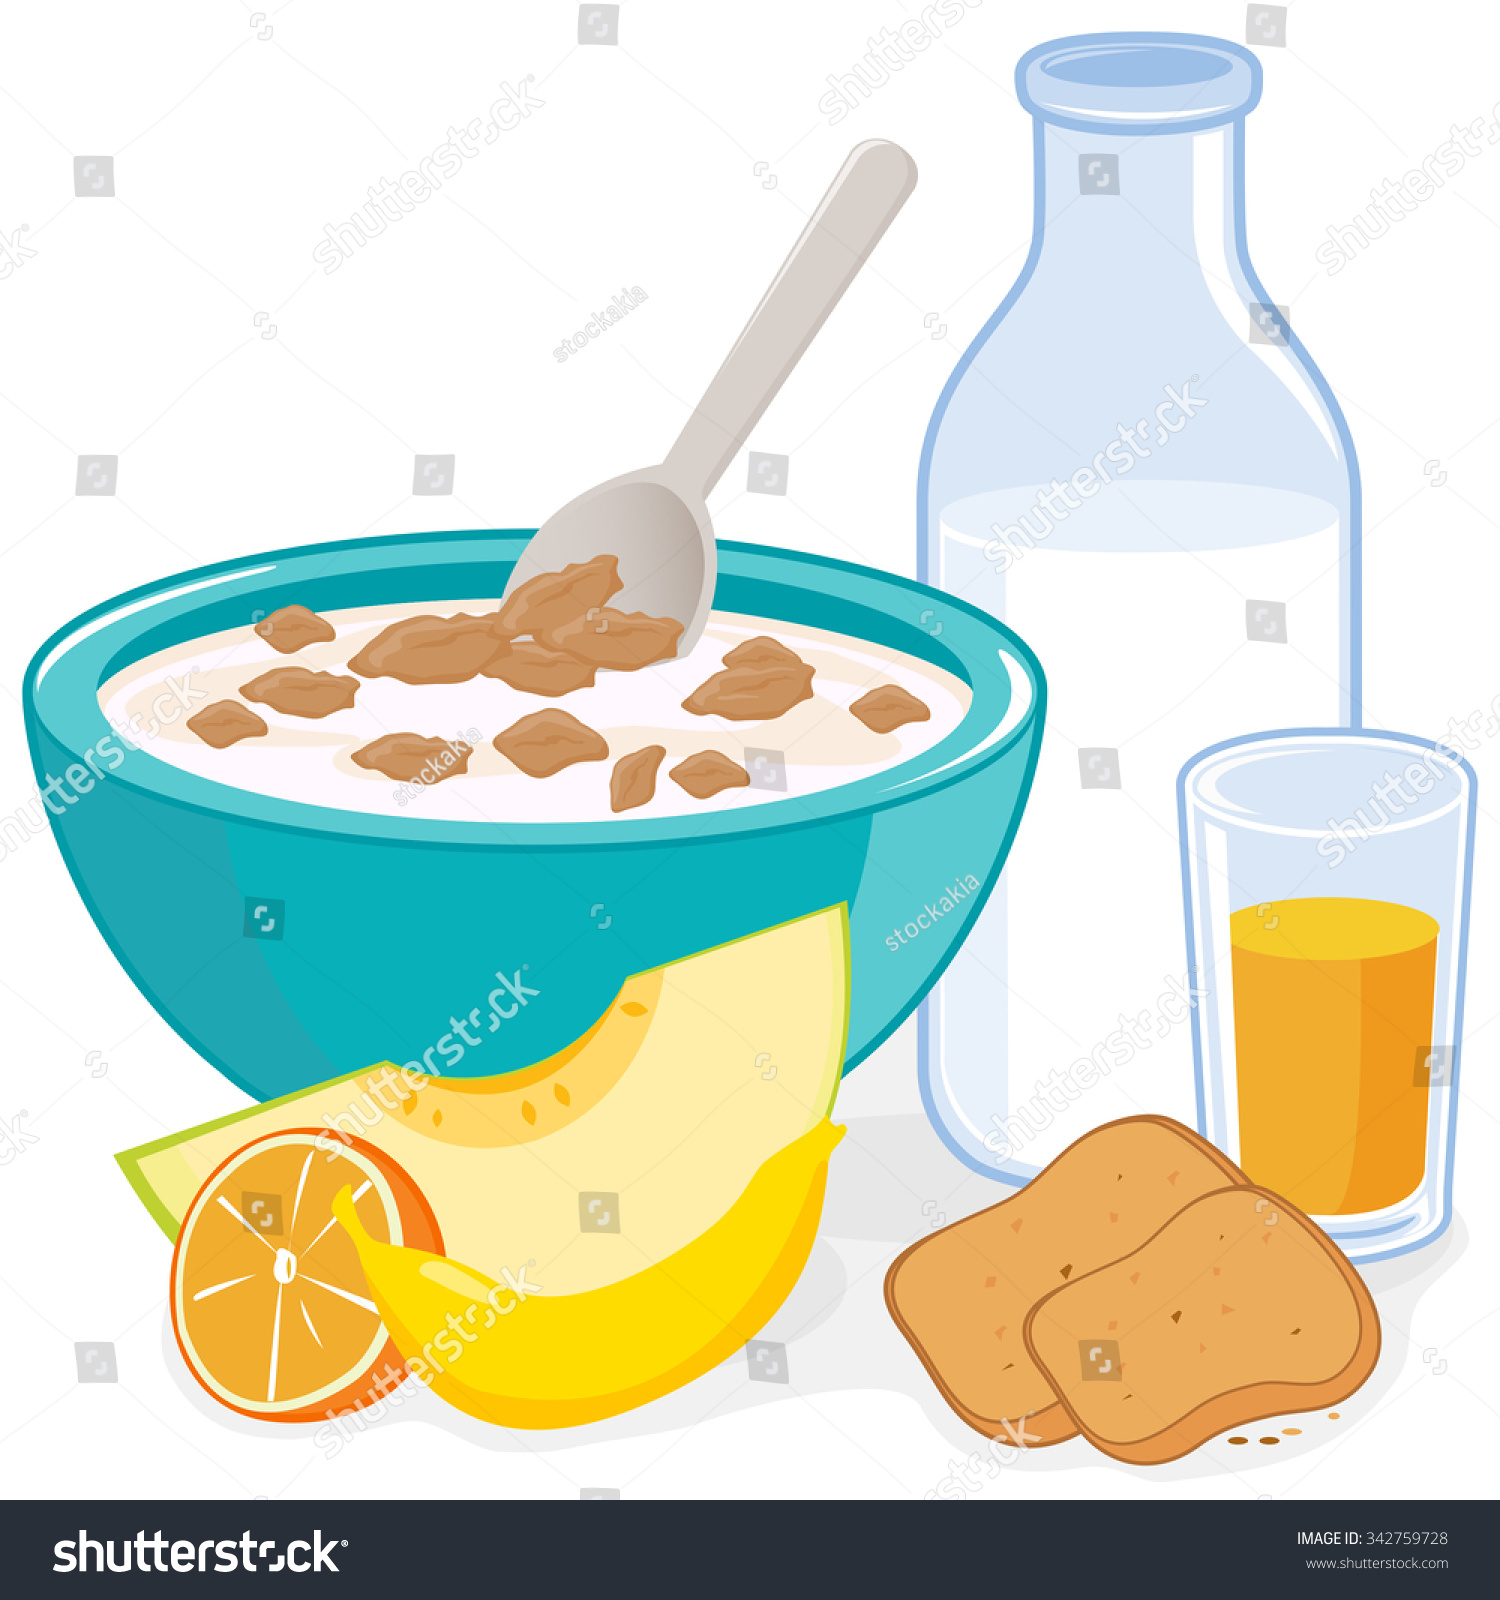 hight resolution of a bowl of cereal bottle of milk juice toast and fruits